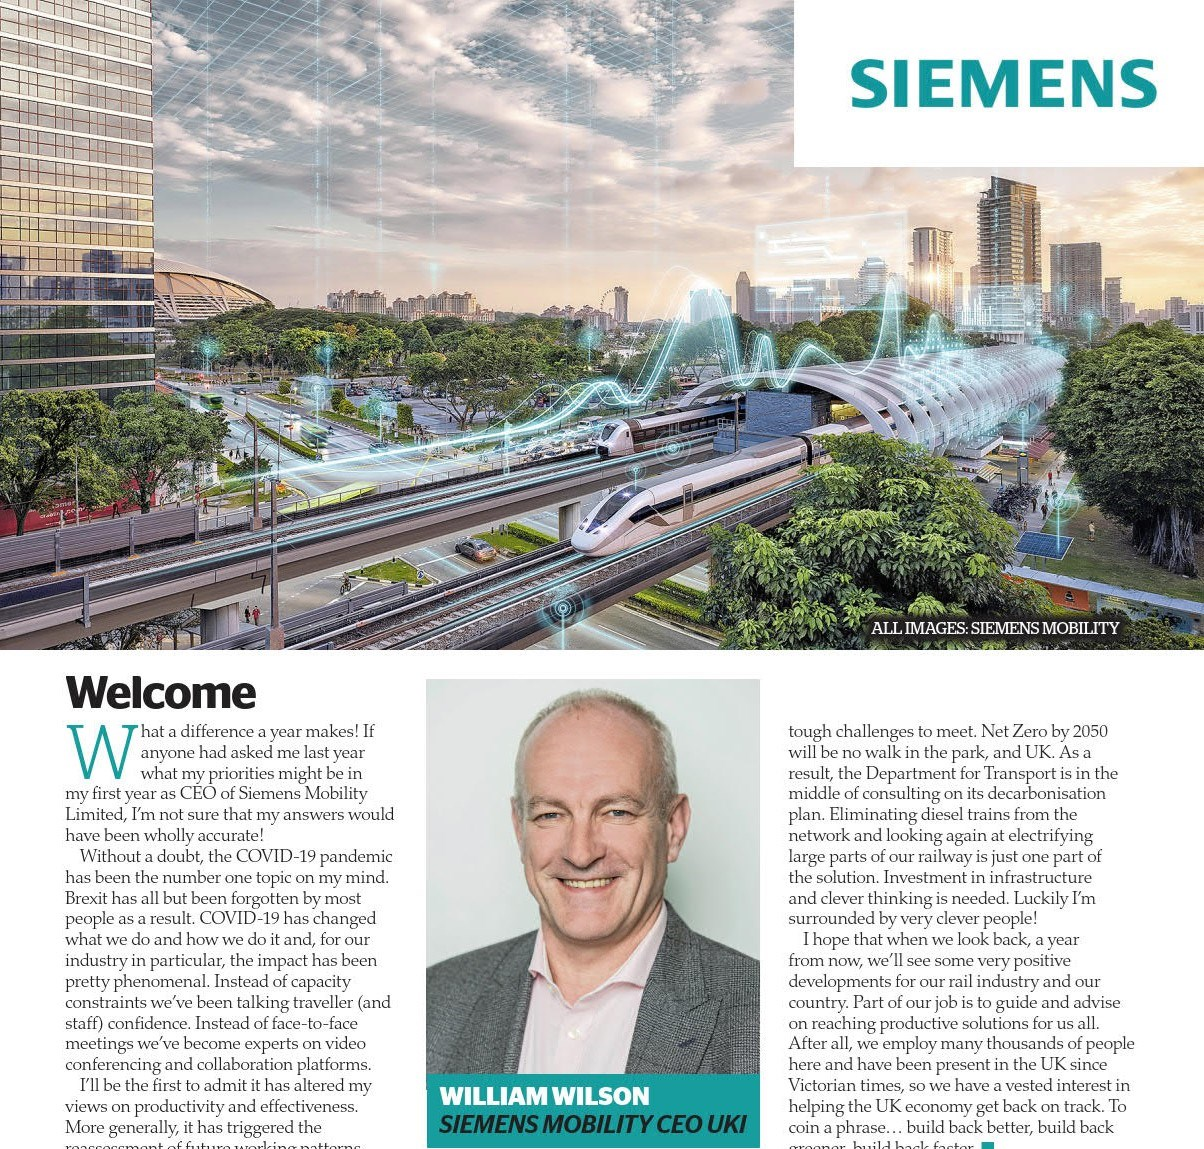 New supplement in RAIL magazine for Siemens Mobility: Siemens cover intro crop